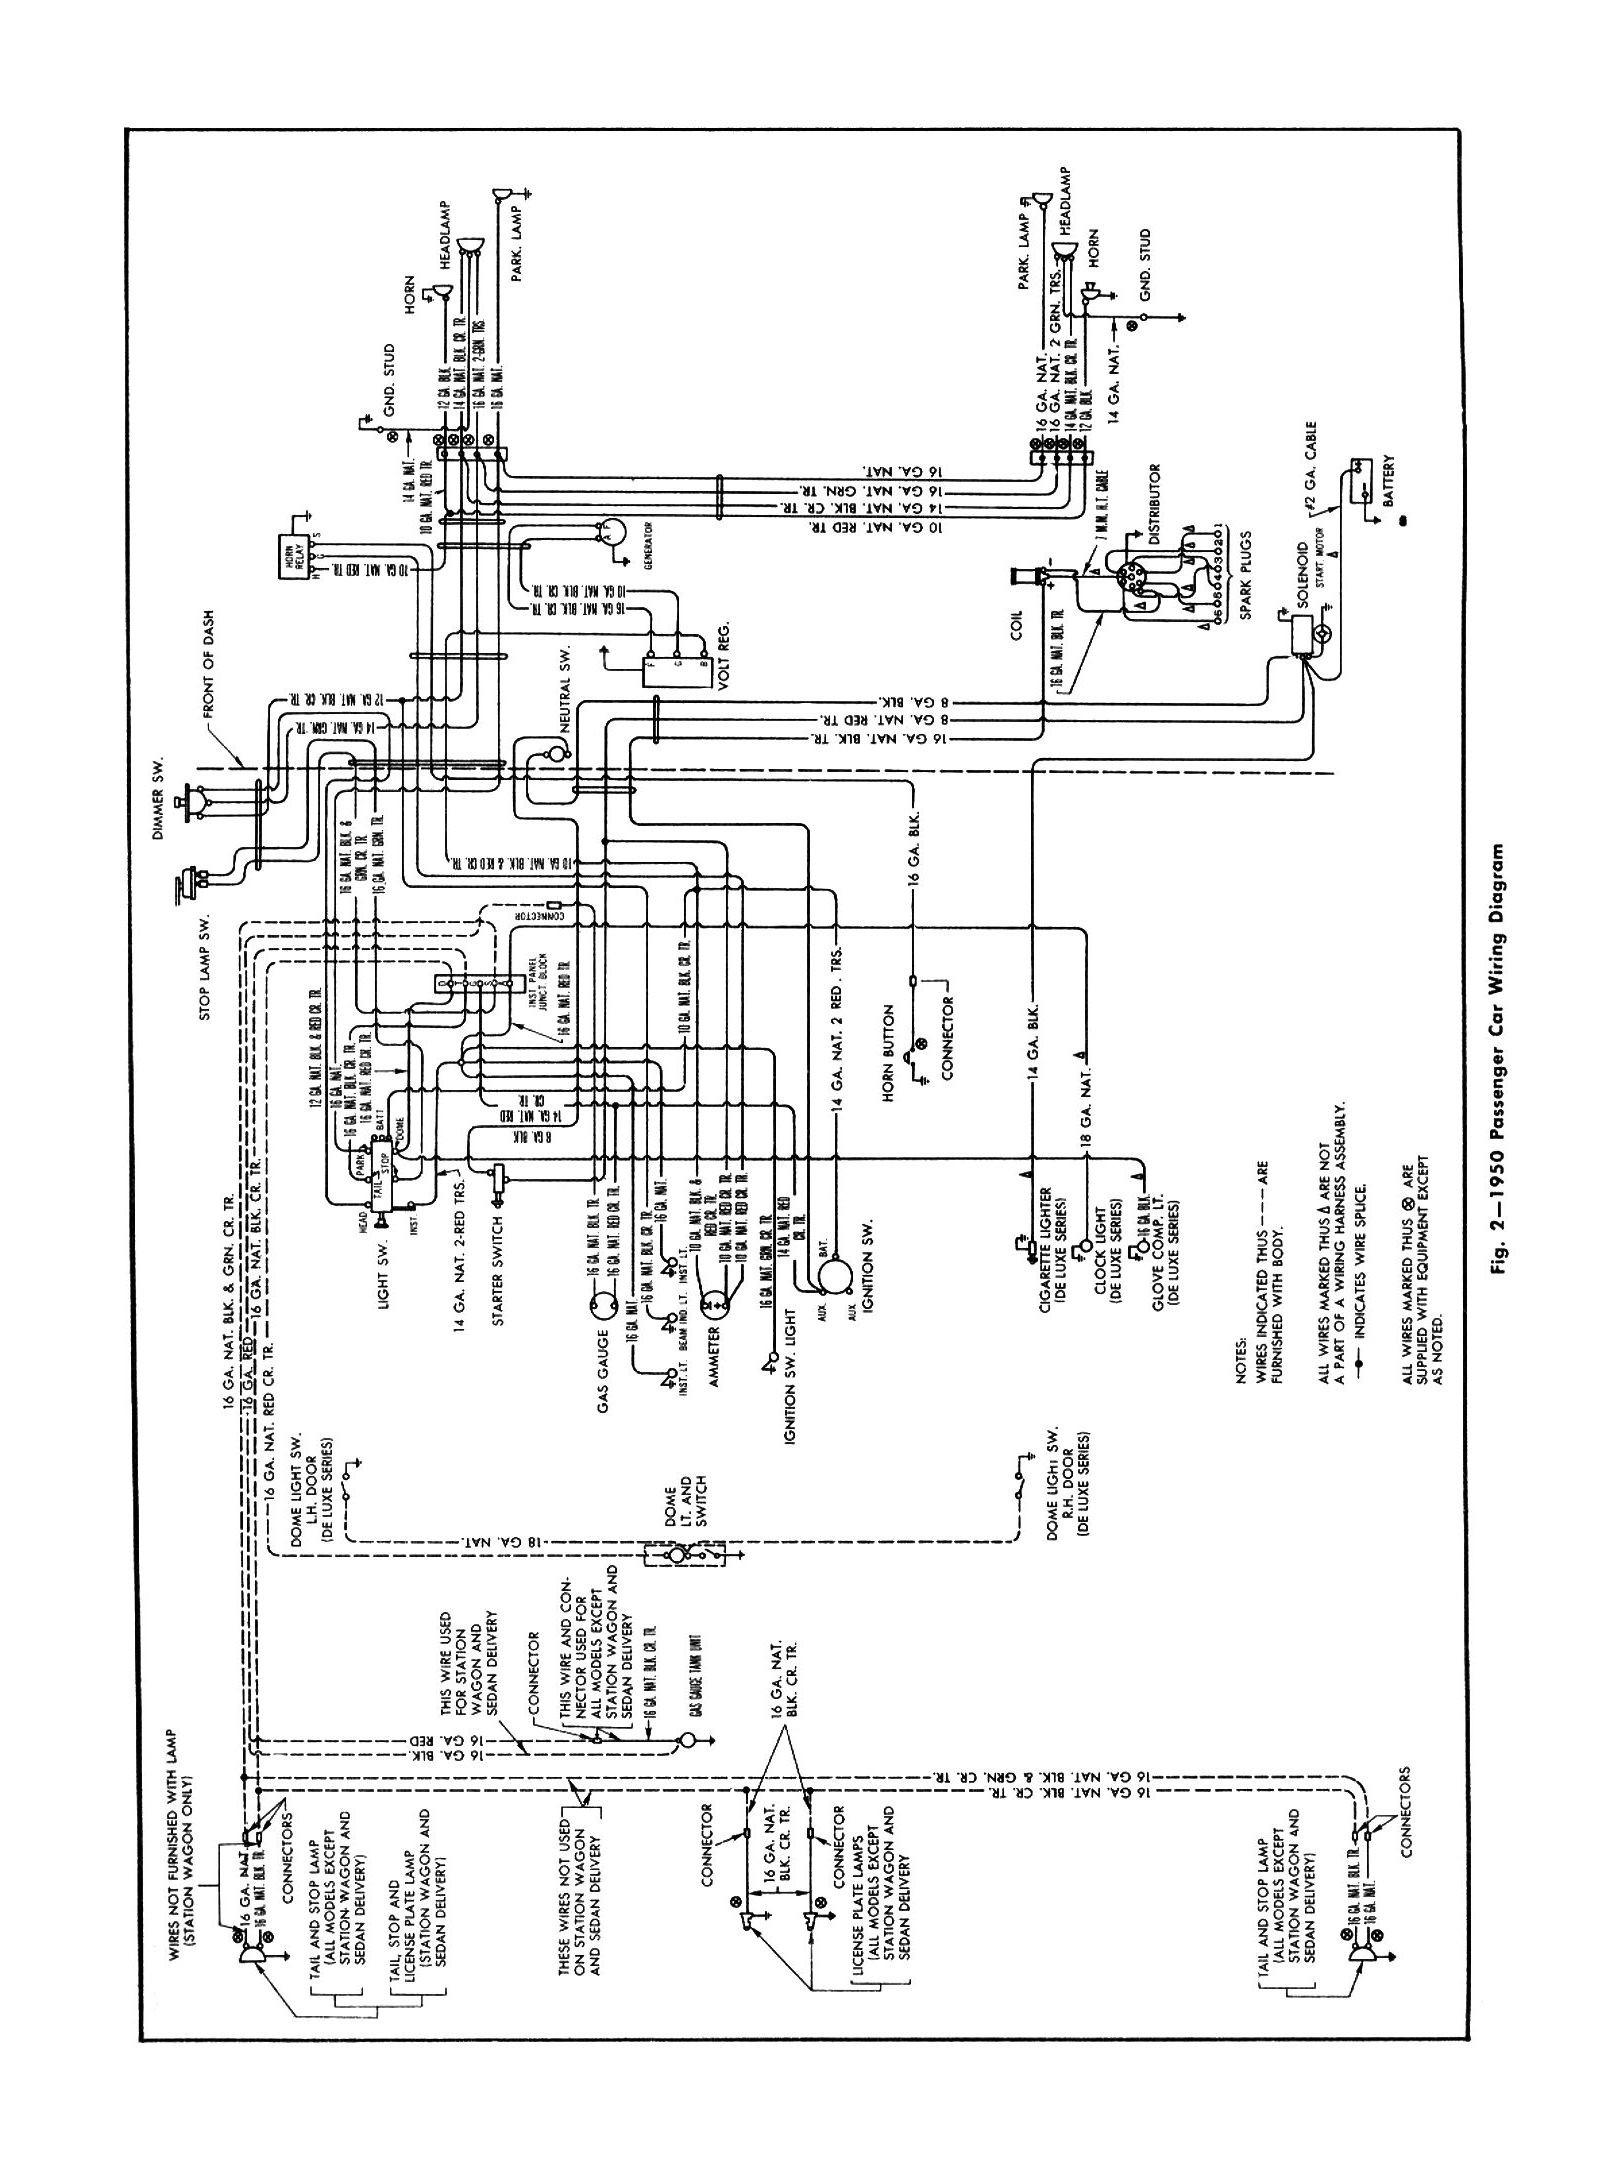 Peachy Studebaker Wiring Diagrams Wiring Library Wiring Digital Resources Funapmognl